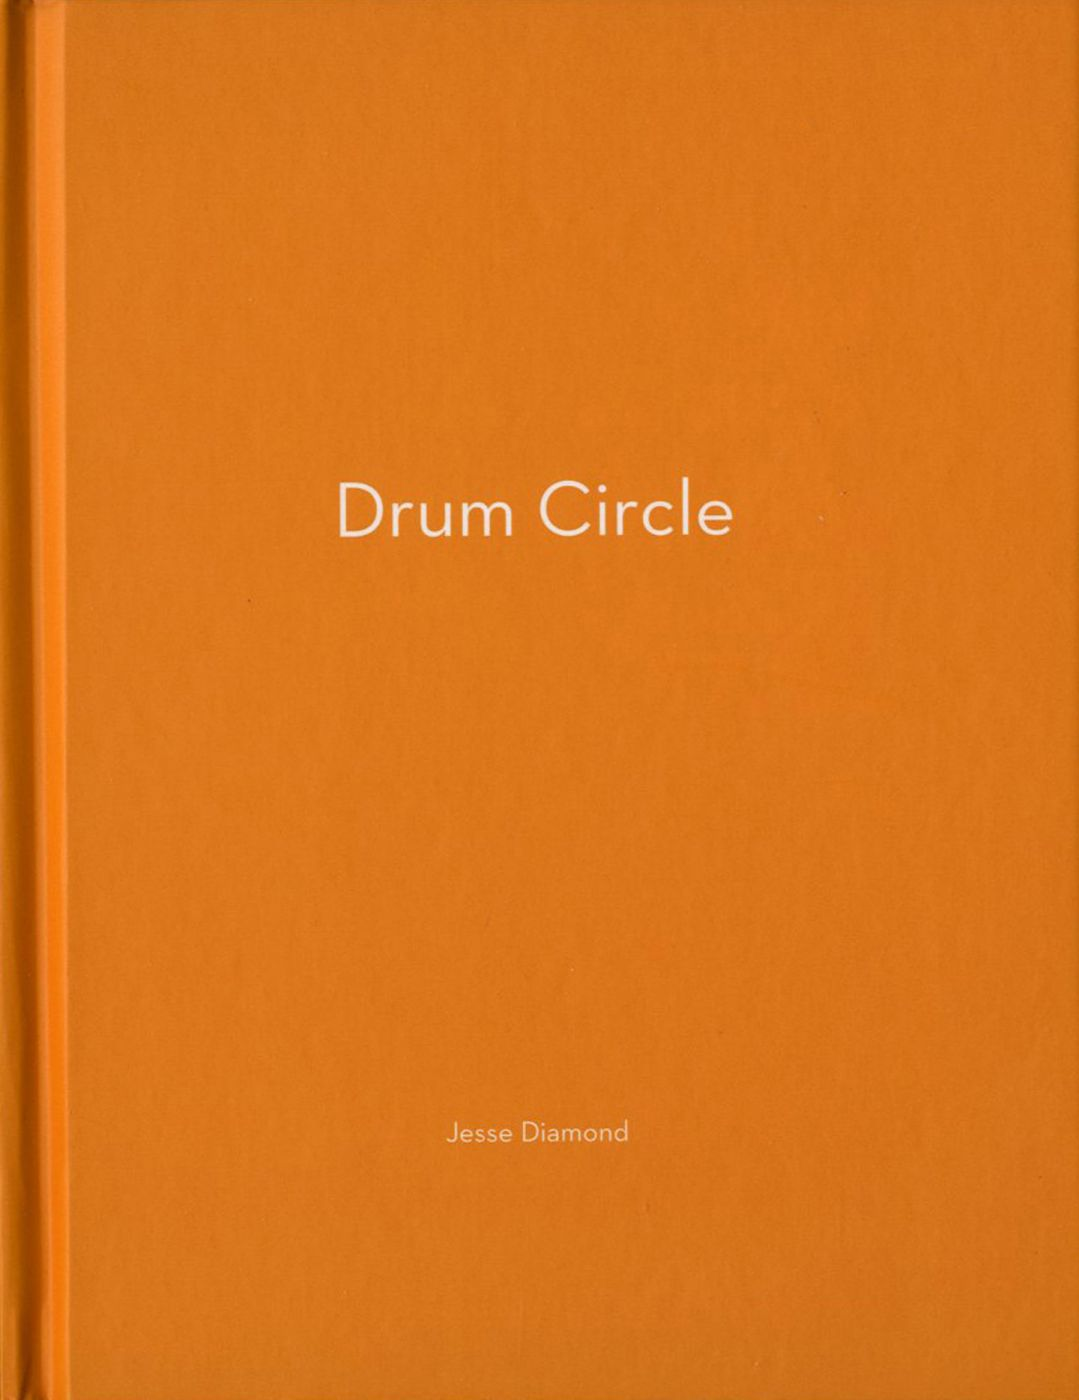 Jesse Diamond: Drum Circle (One Picture Book #44), Limited Edition (with Print)